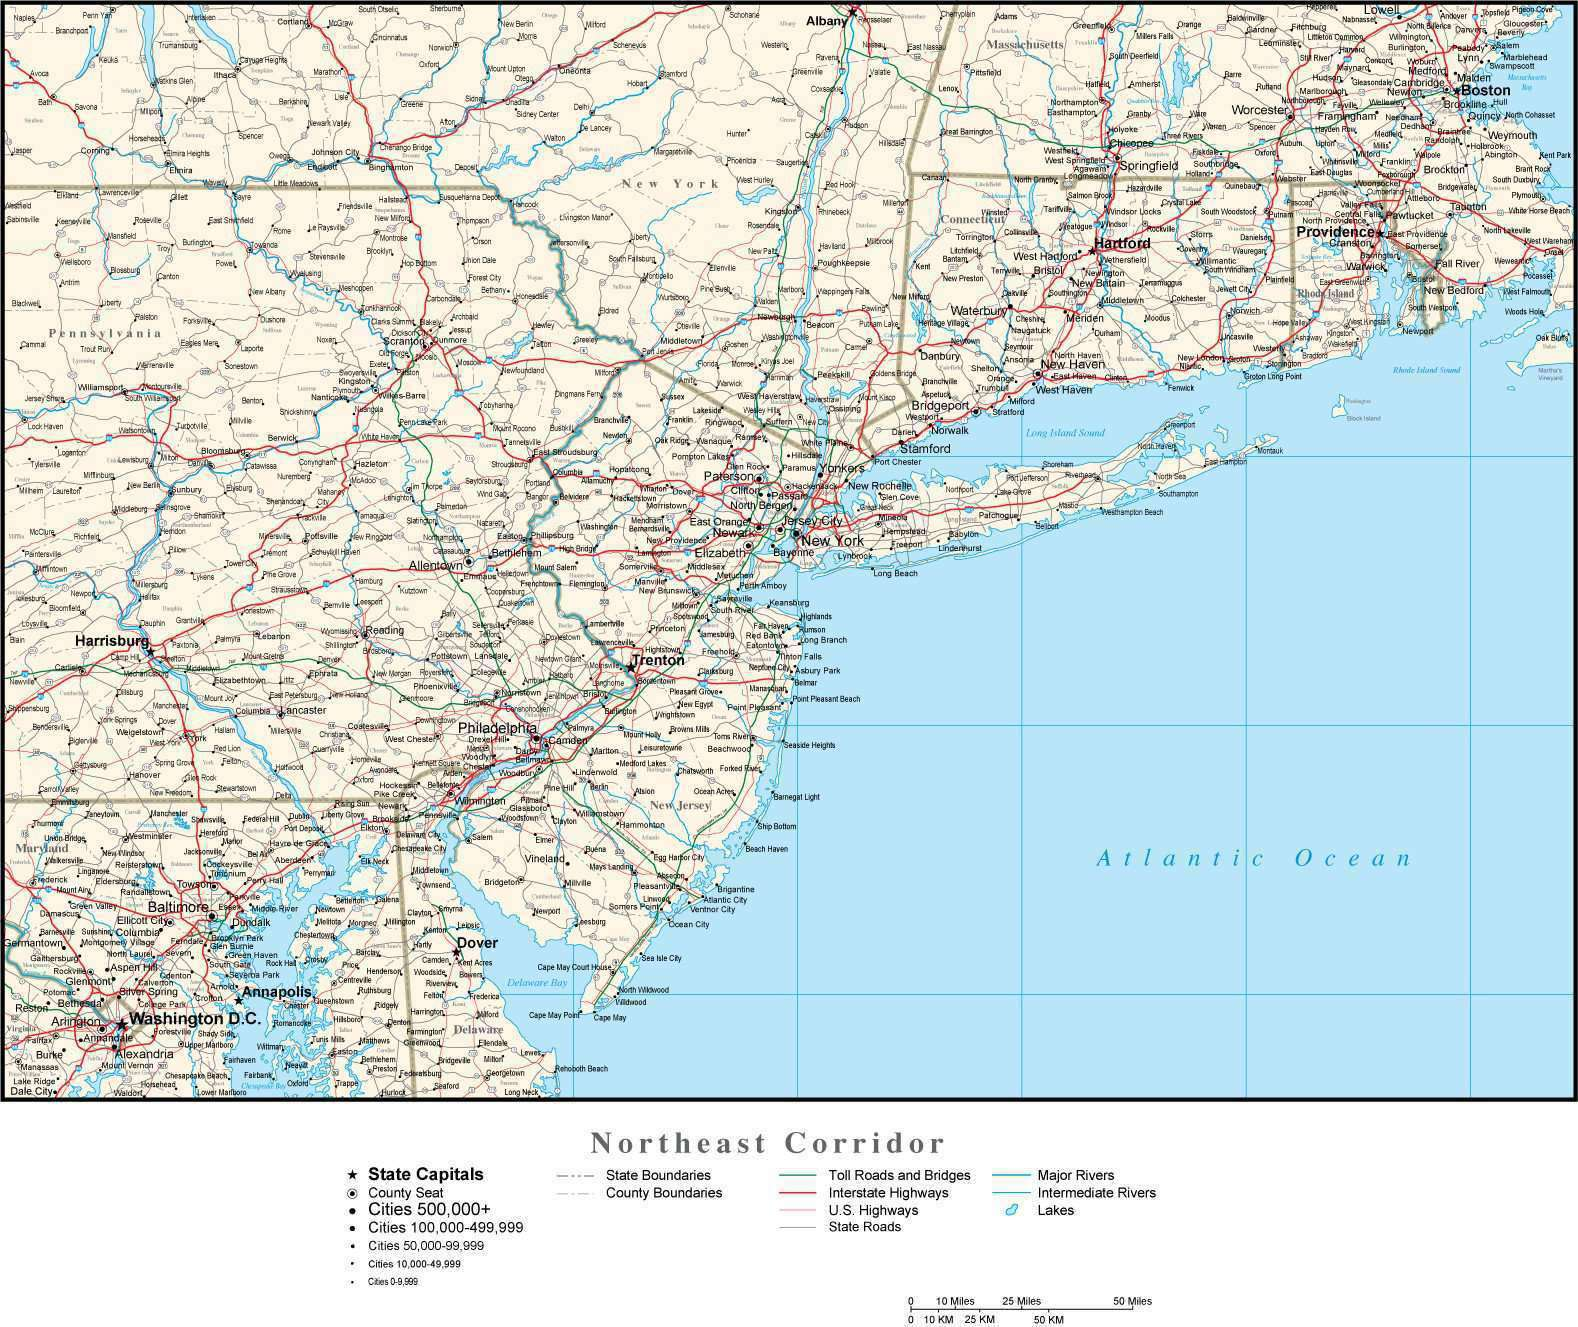 Northeast Corridor Map with State Boundaries, Cities and Highways